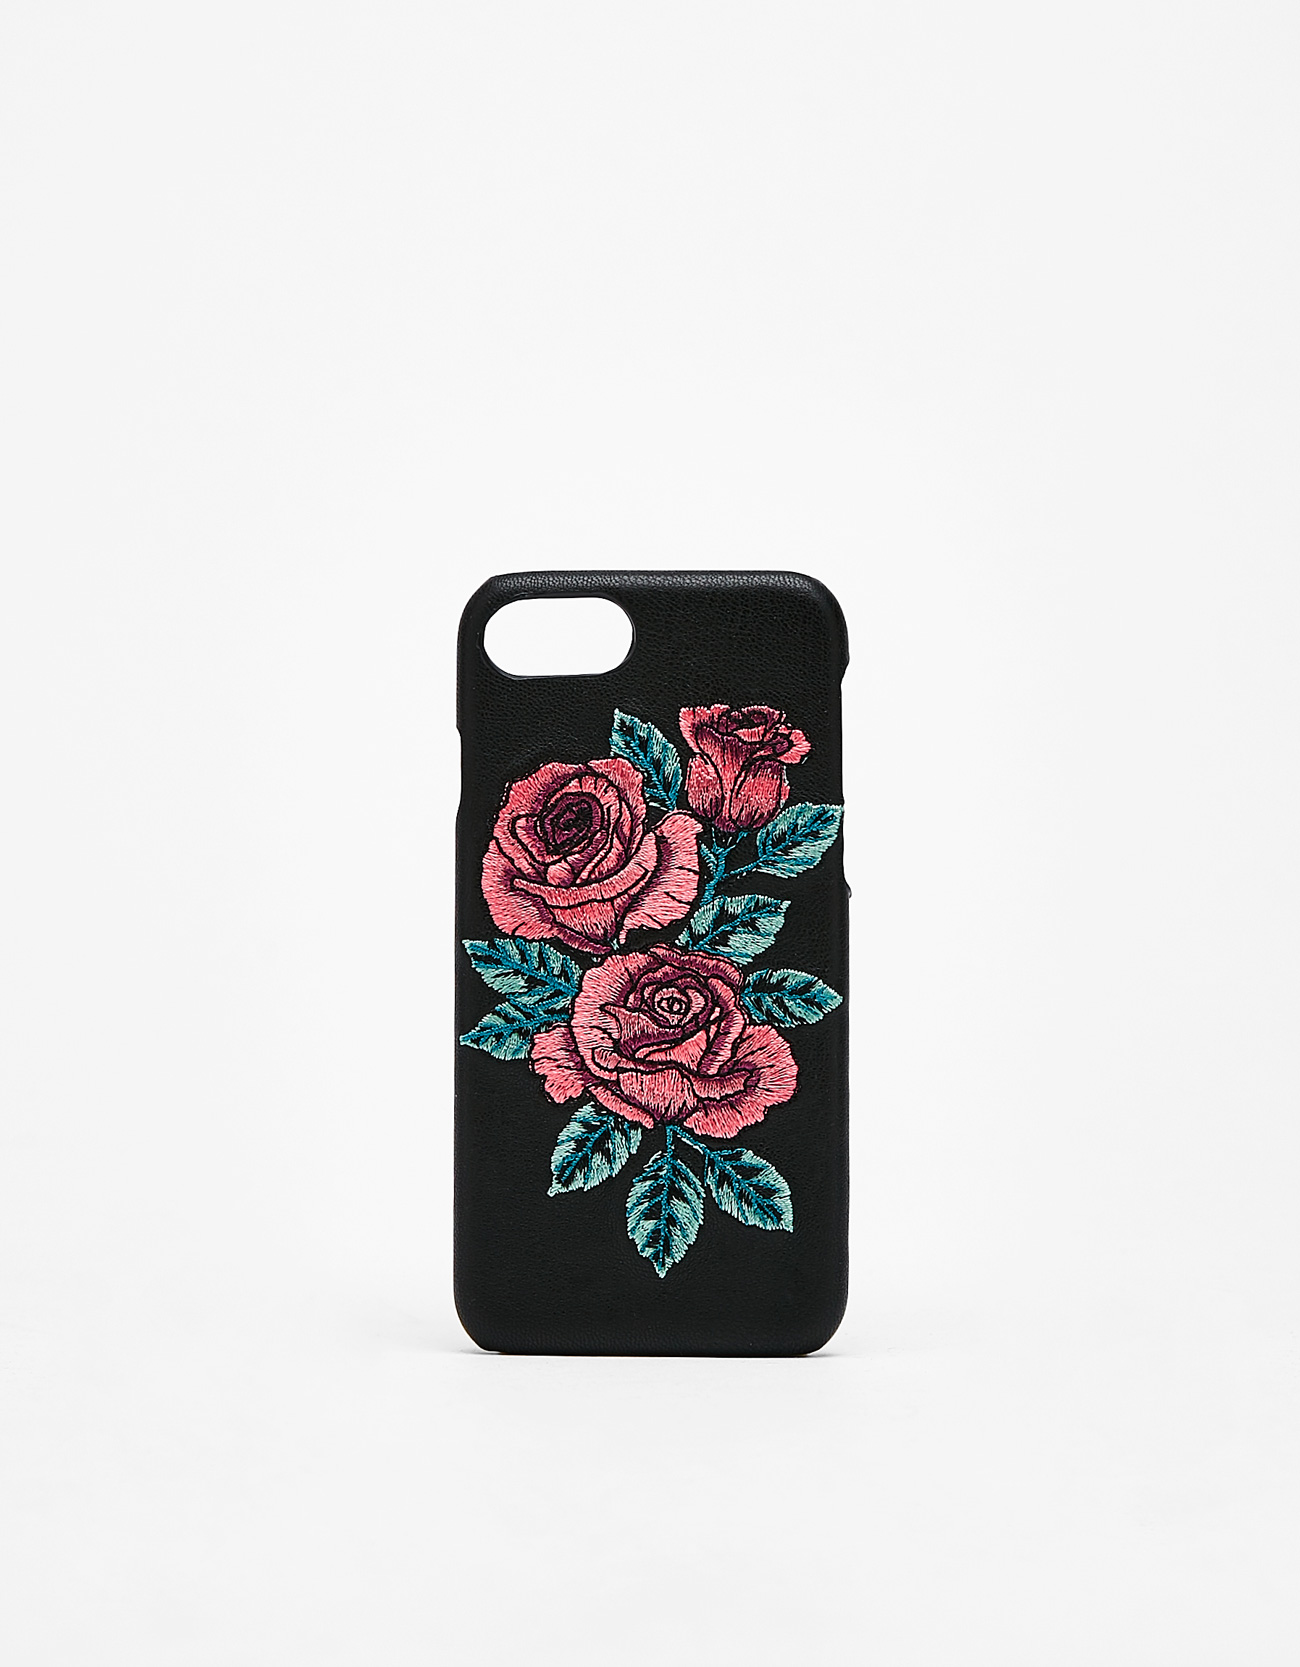 size 40 21514 6365a Embroidered rose iPhone 6/6s/7/8 case - iPhone Cases - Bershka Kuwait